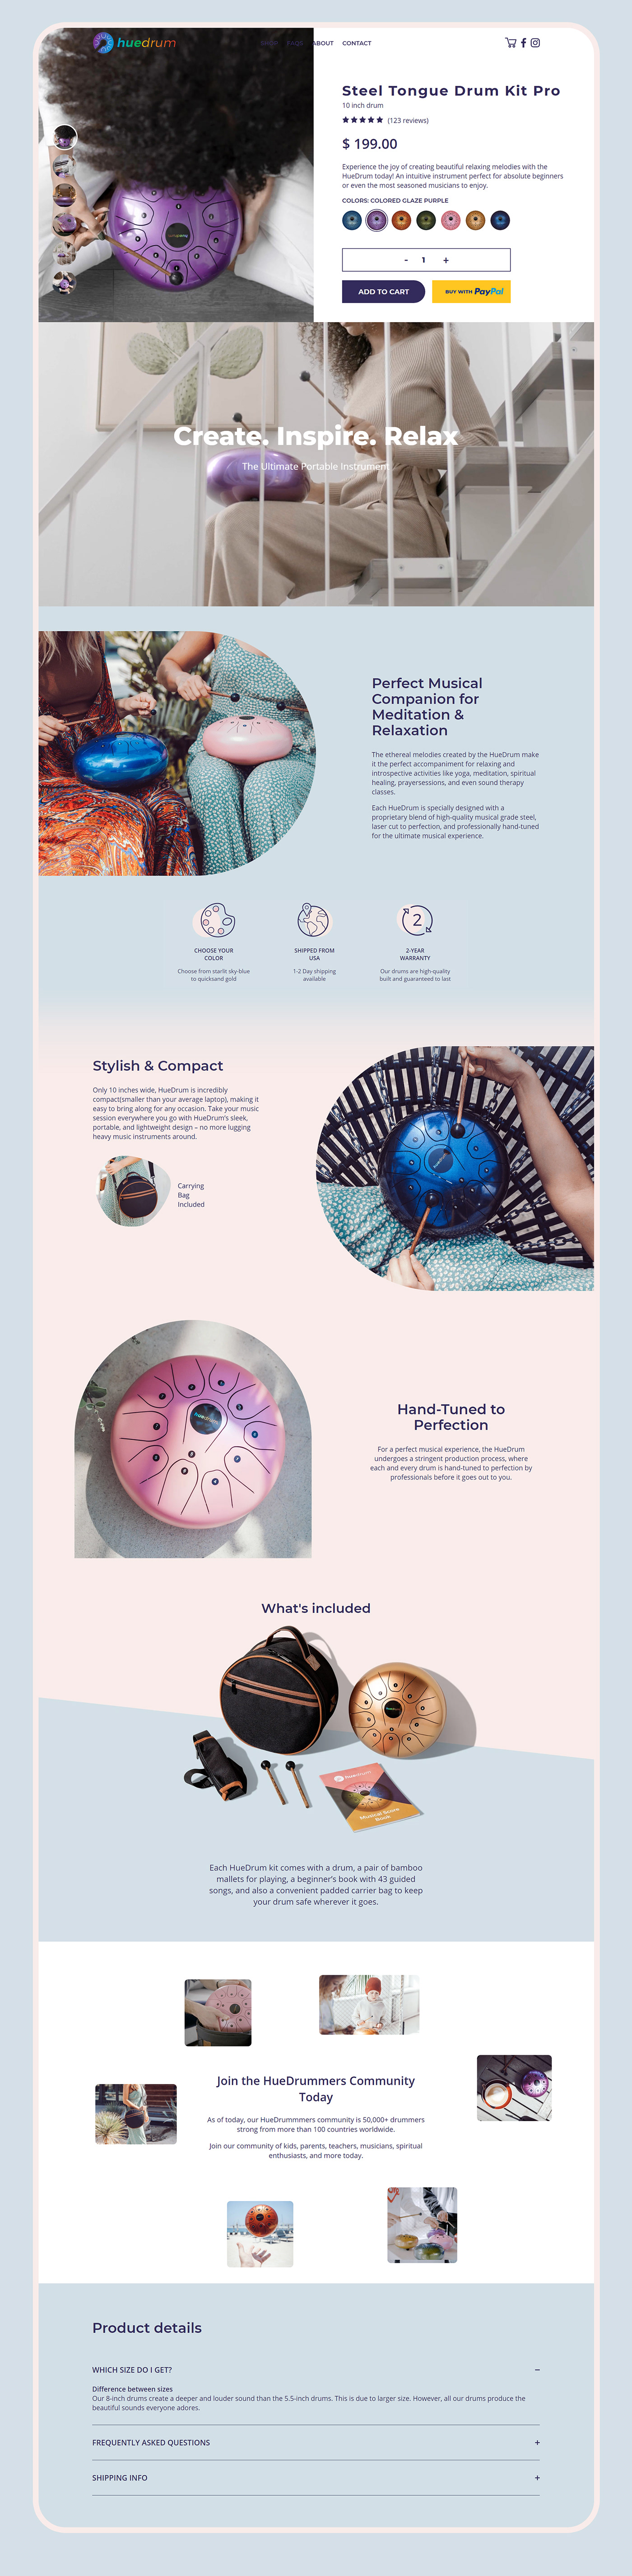 content Ecommerce kids Photography  Shopify smm content Steel Drum